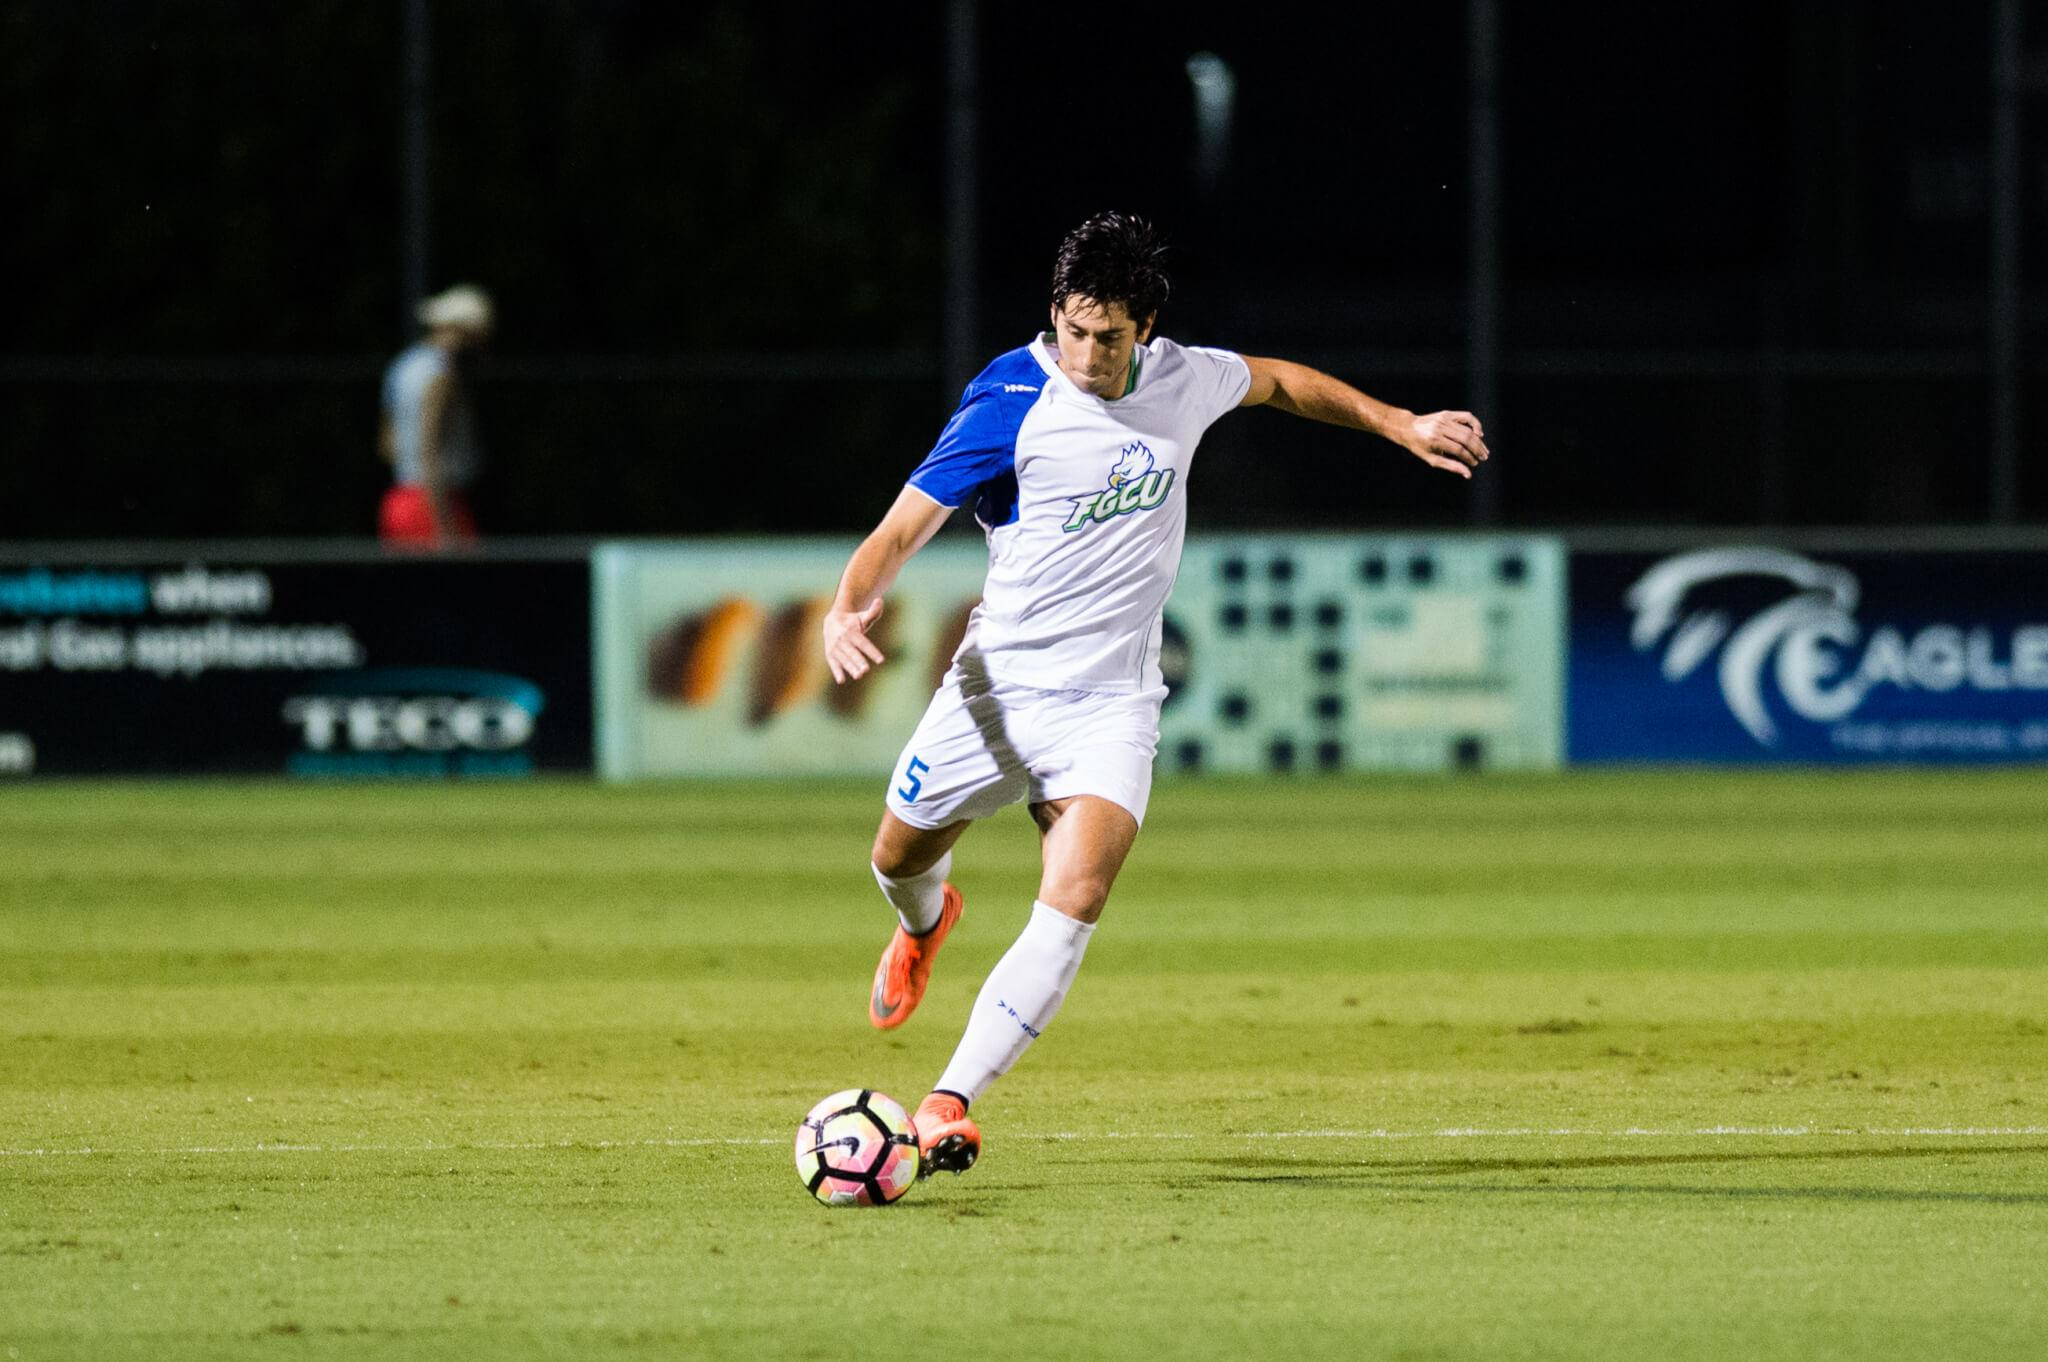 Preview: Men's soccer vs. USC Upstate